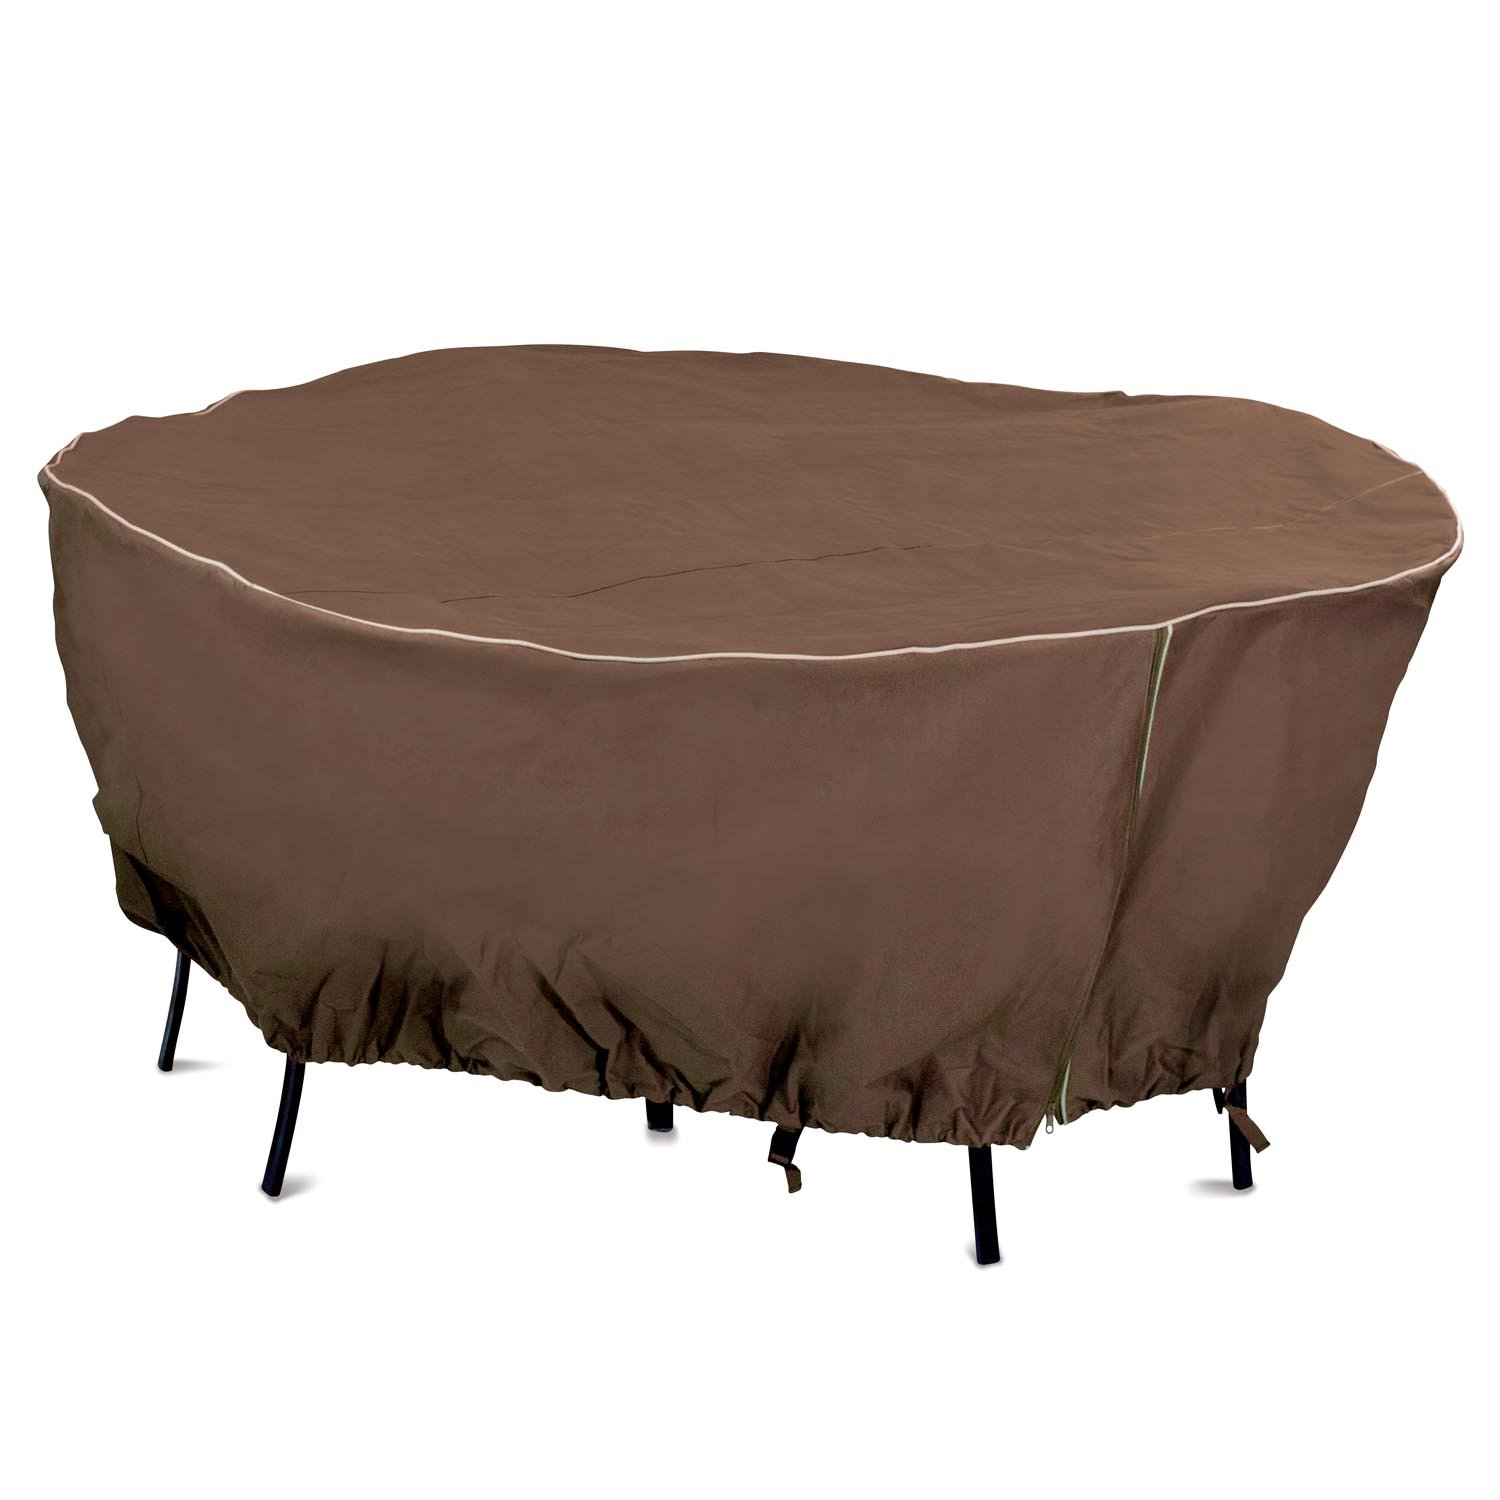 Armor All 80 x 30 Round Table Cover, Brown